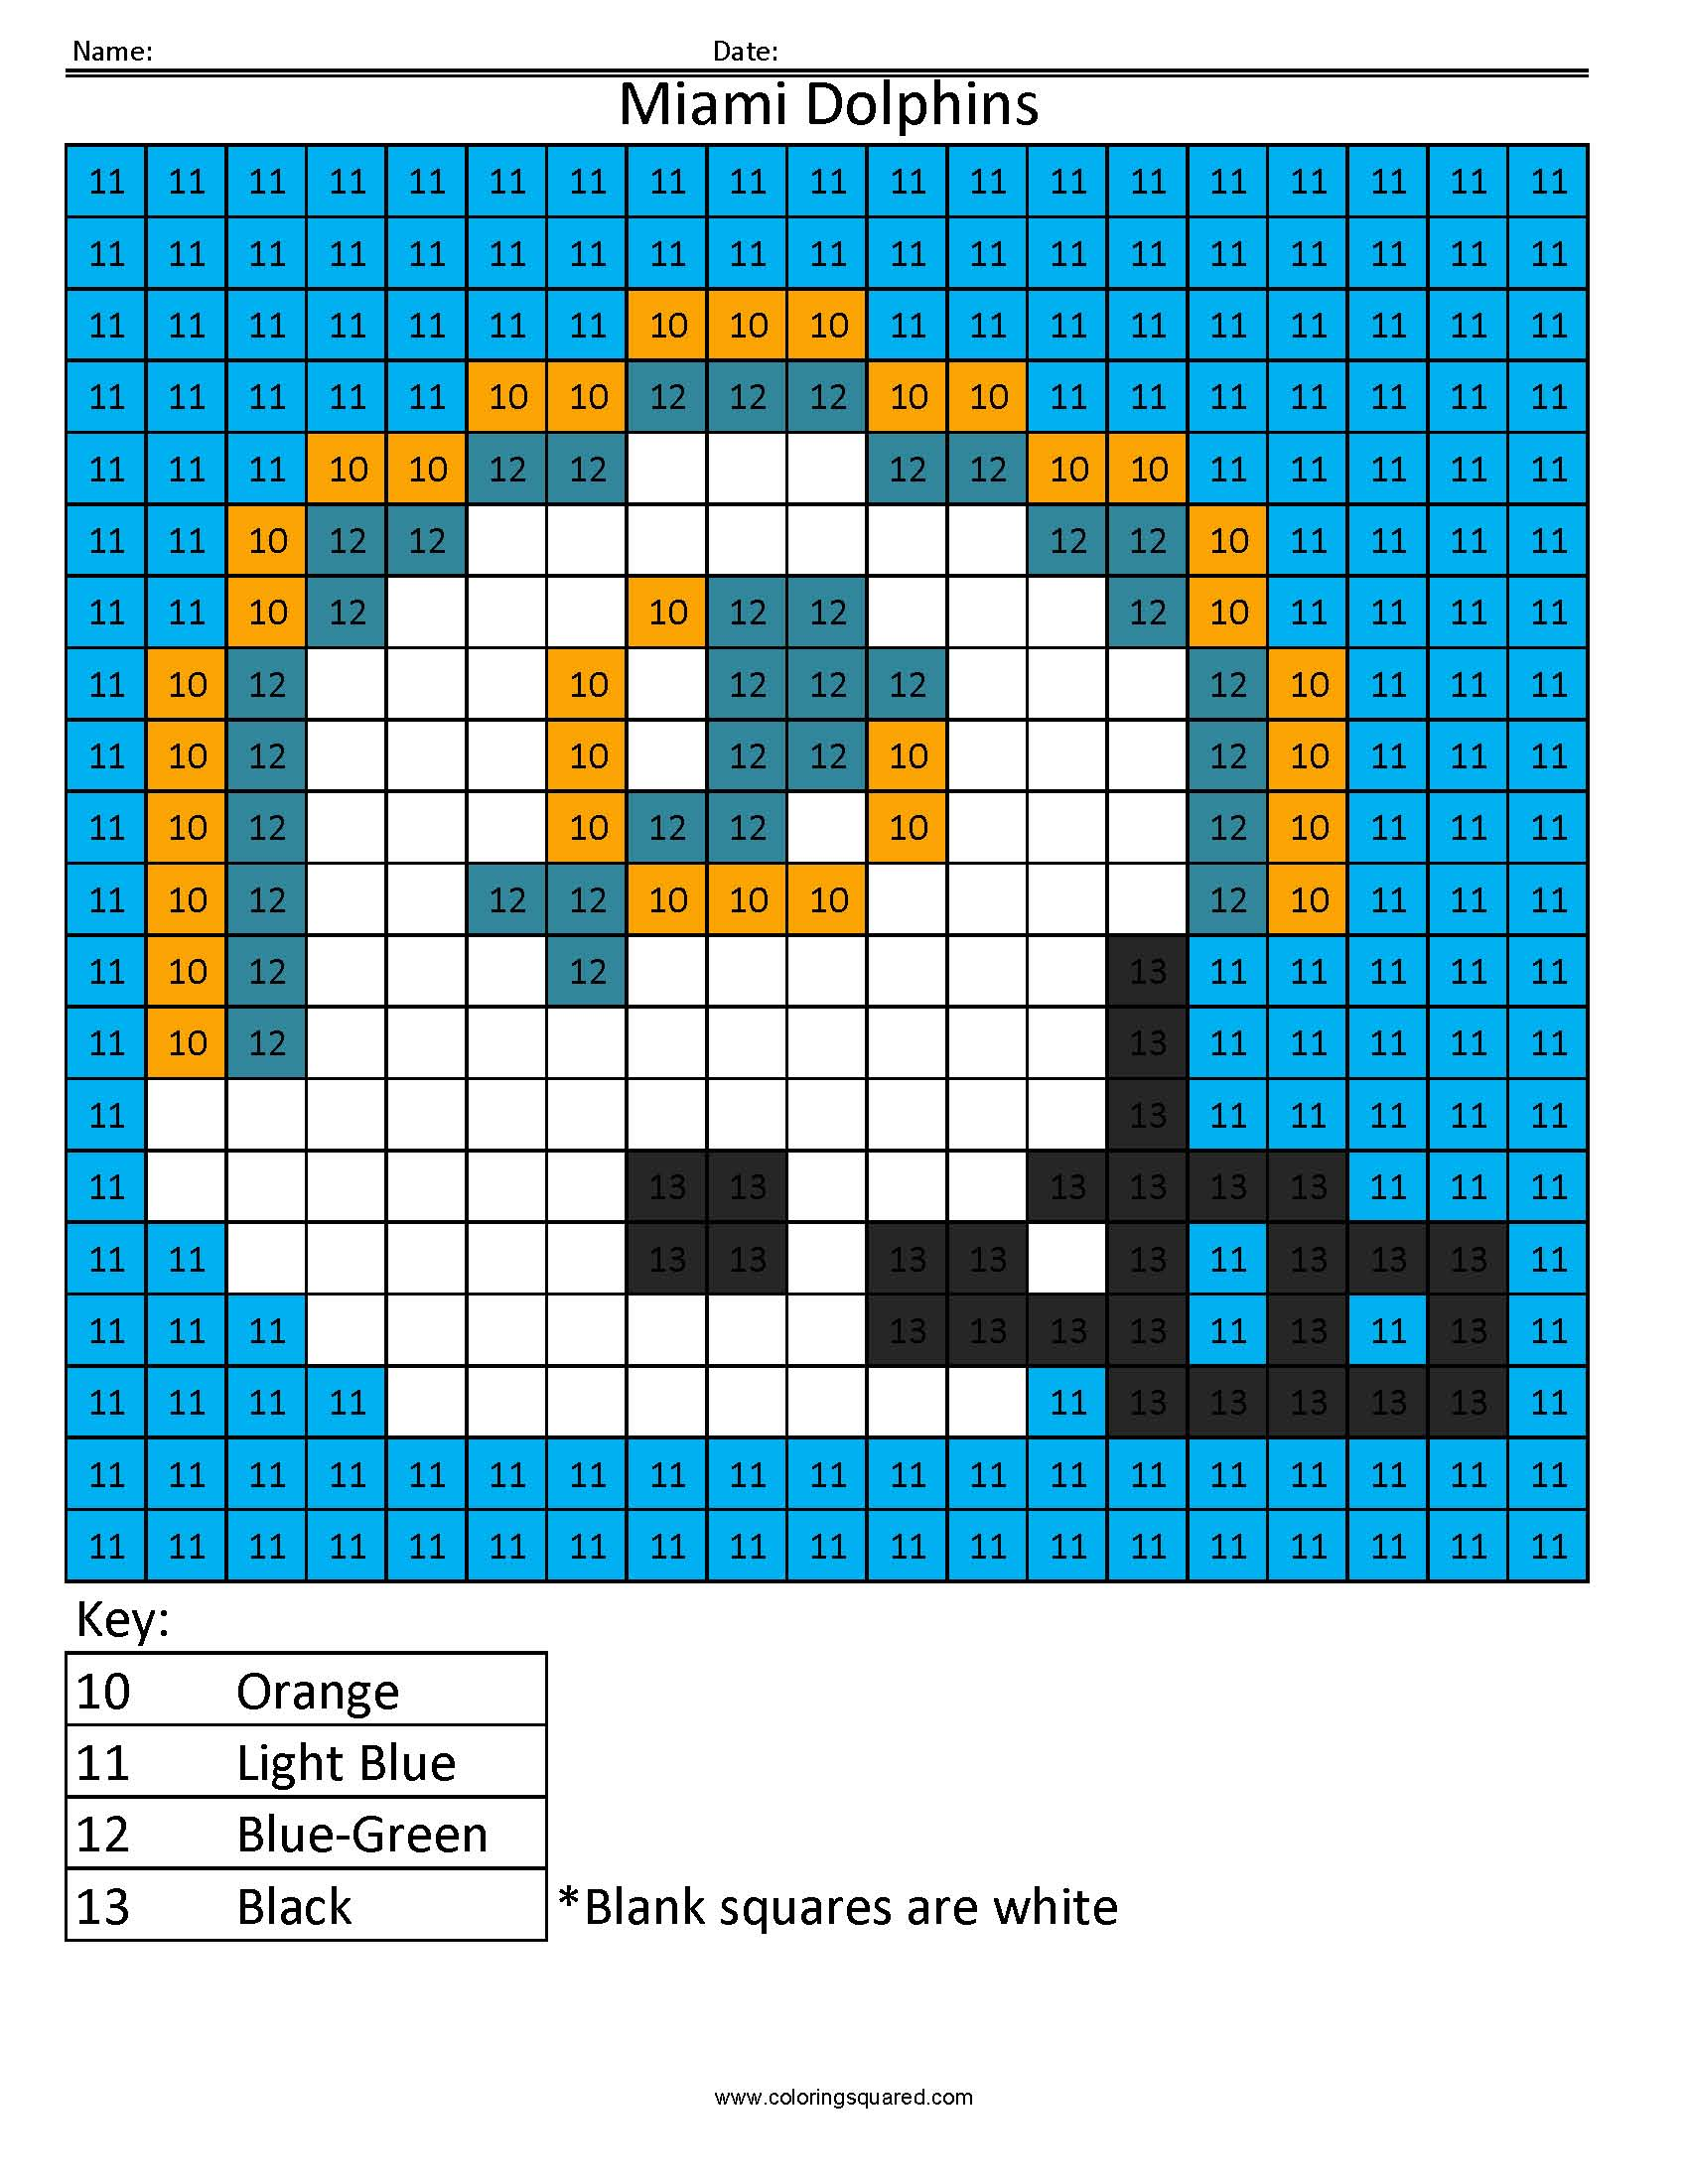 10CN Miami Dolphins NFL AFC color by number - Coloring Squared